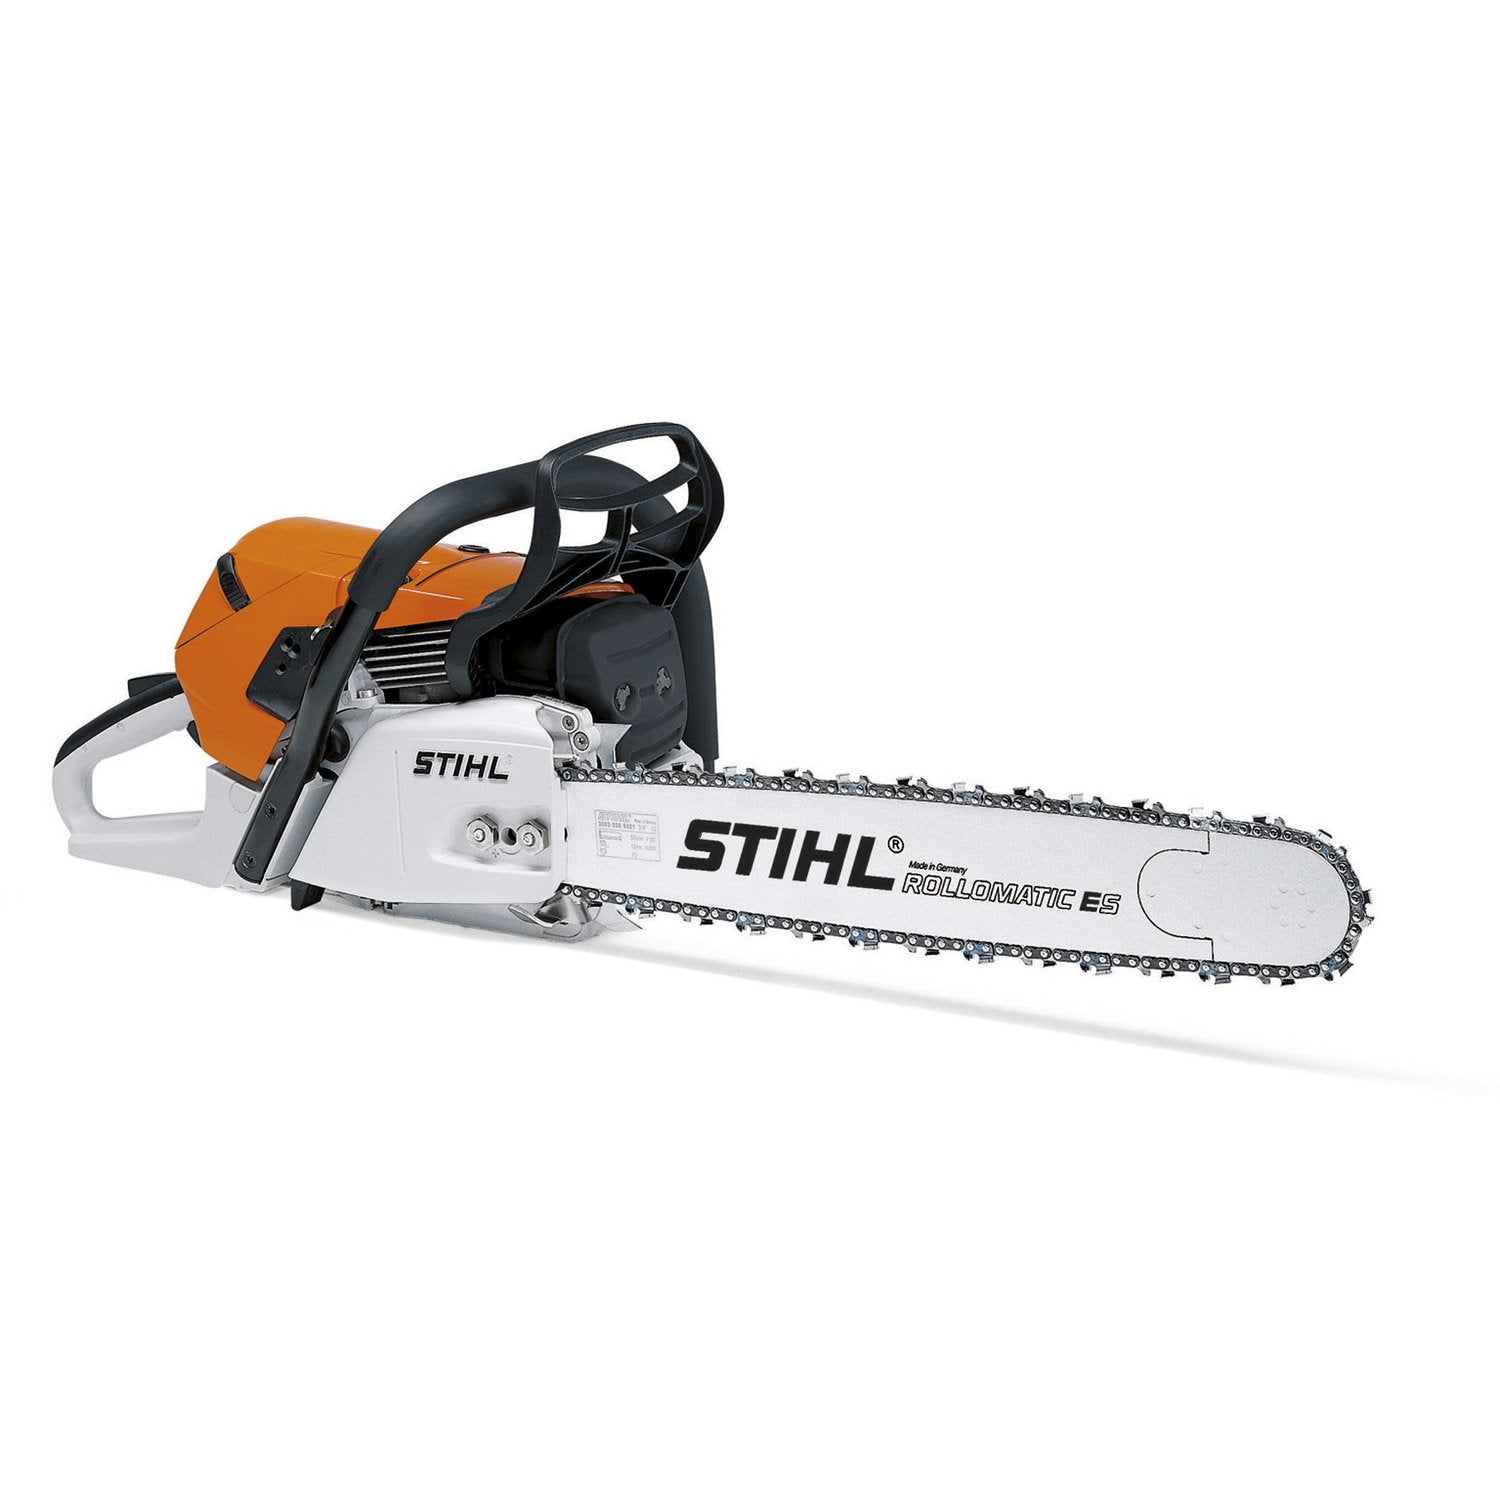 tron onneuse essence stihl ms 441 c m 70 7 cc leroy merlin. Black Bedroom Furniture Sets. Home Design Ideas